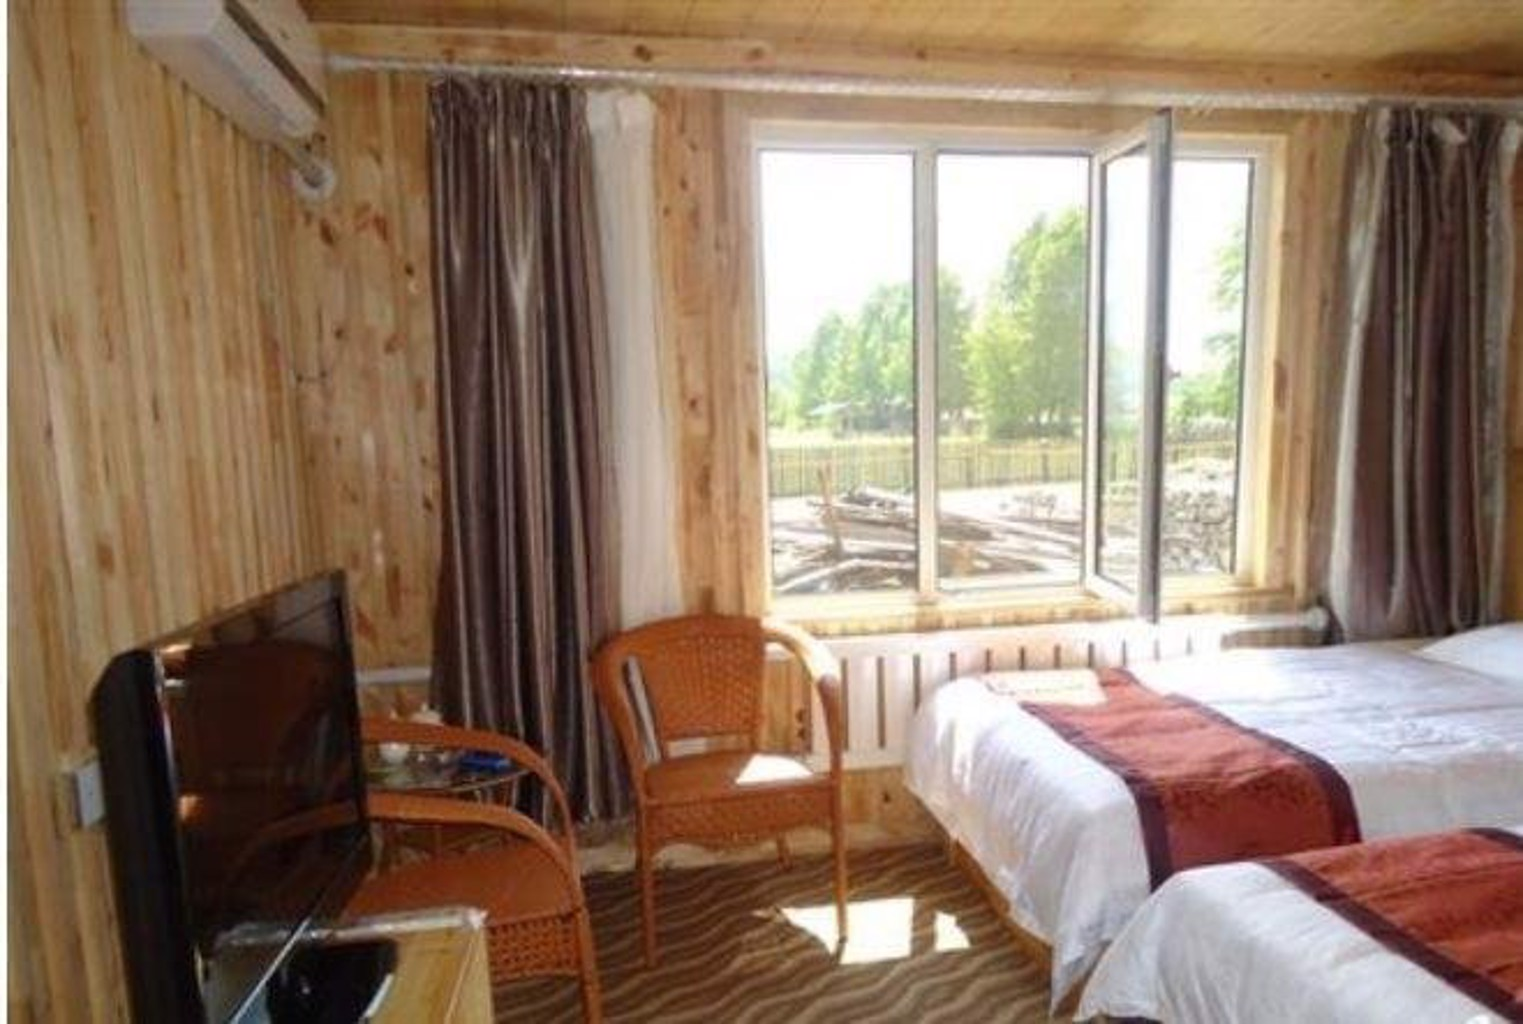 Gallery image of Russia Camp Resort